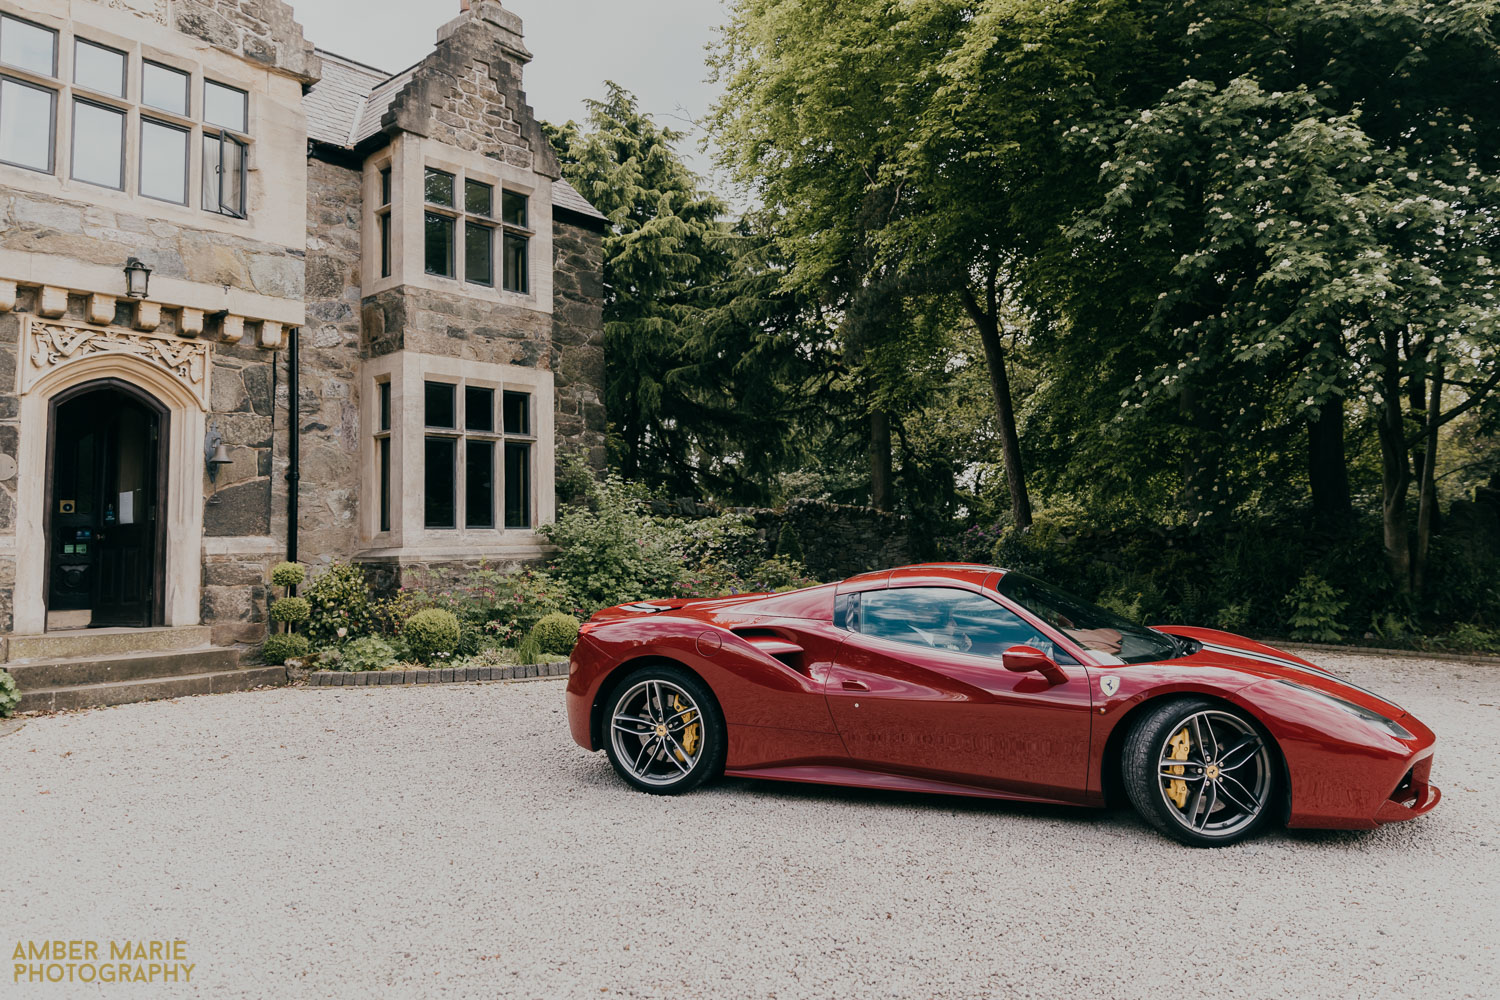 Bride and groom arriving at Abbots Oak wedding in red Ferrari